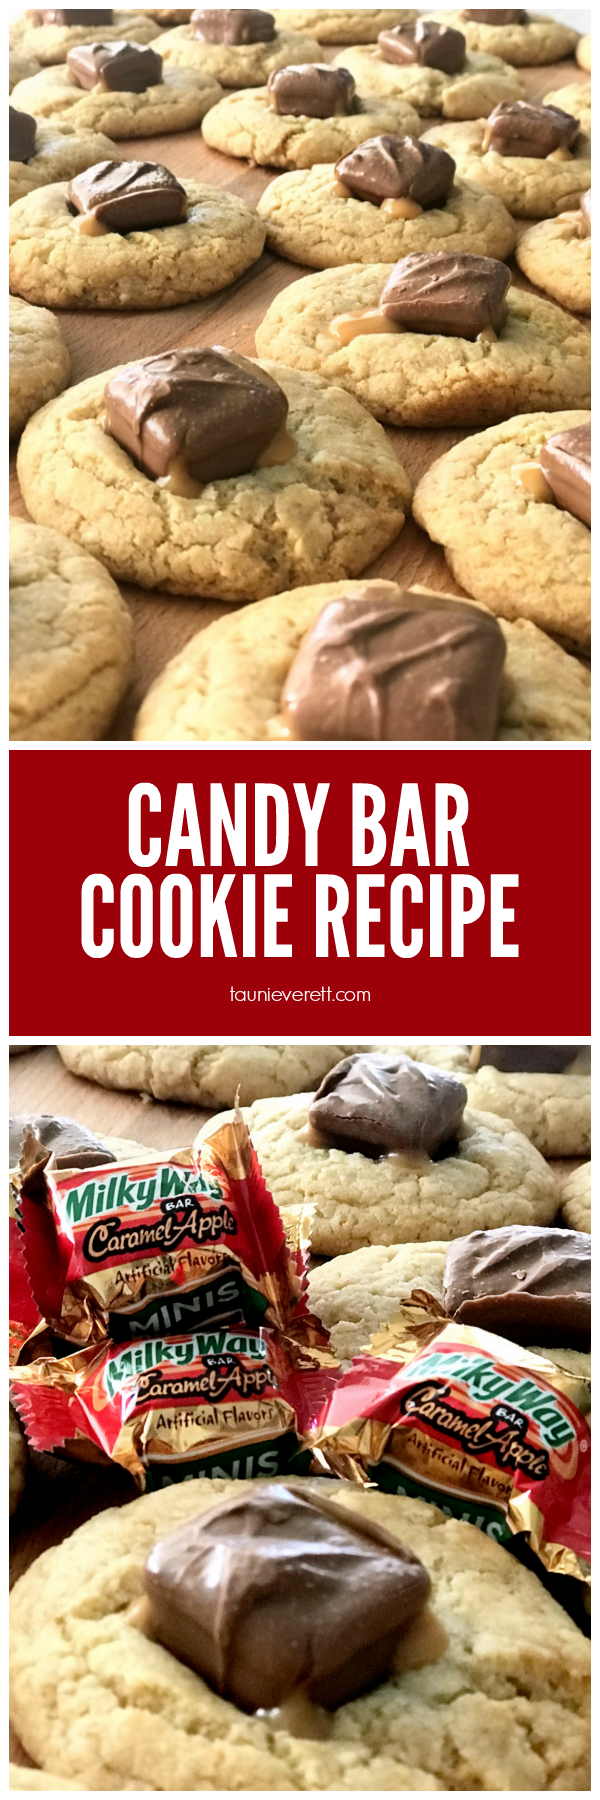 Milky Way Candy Bar Cookie Recipe. Perfect for using up all those mini candy bars from Halloween! #fall #baking #cookierecipe #candybar #halloween